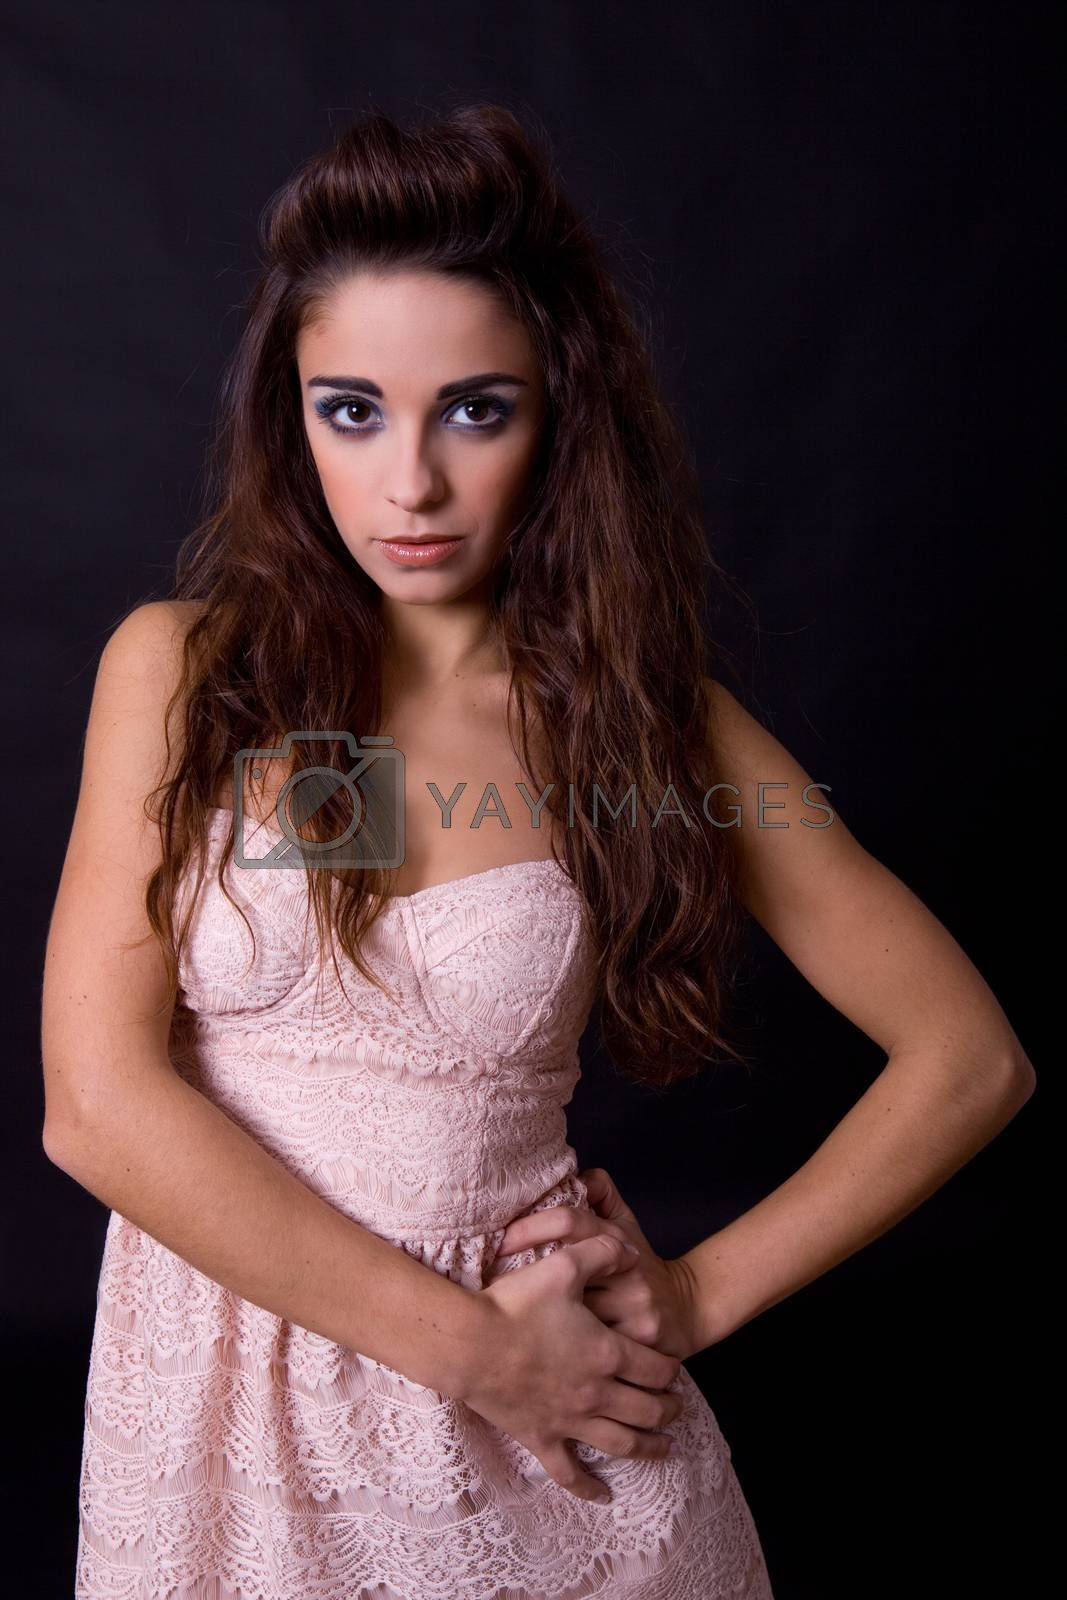 Royalty free image of stunning by zittto